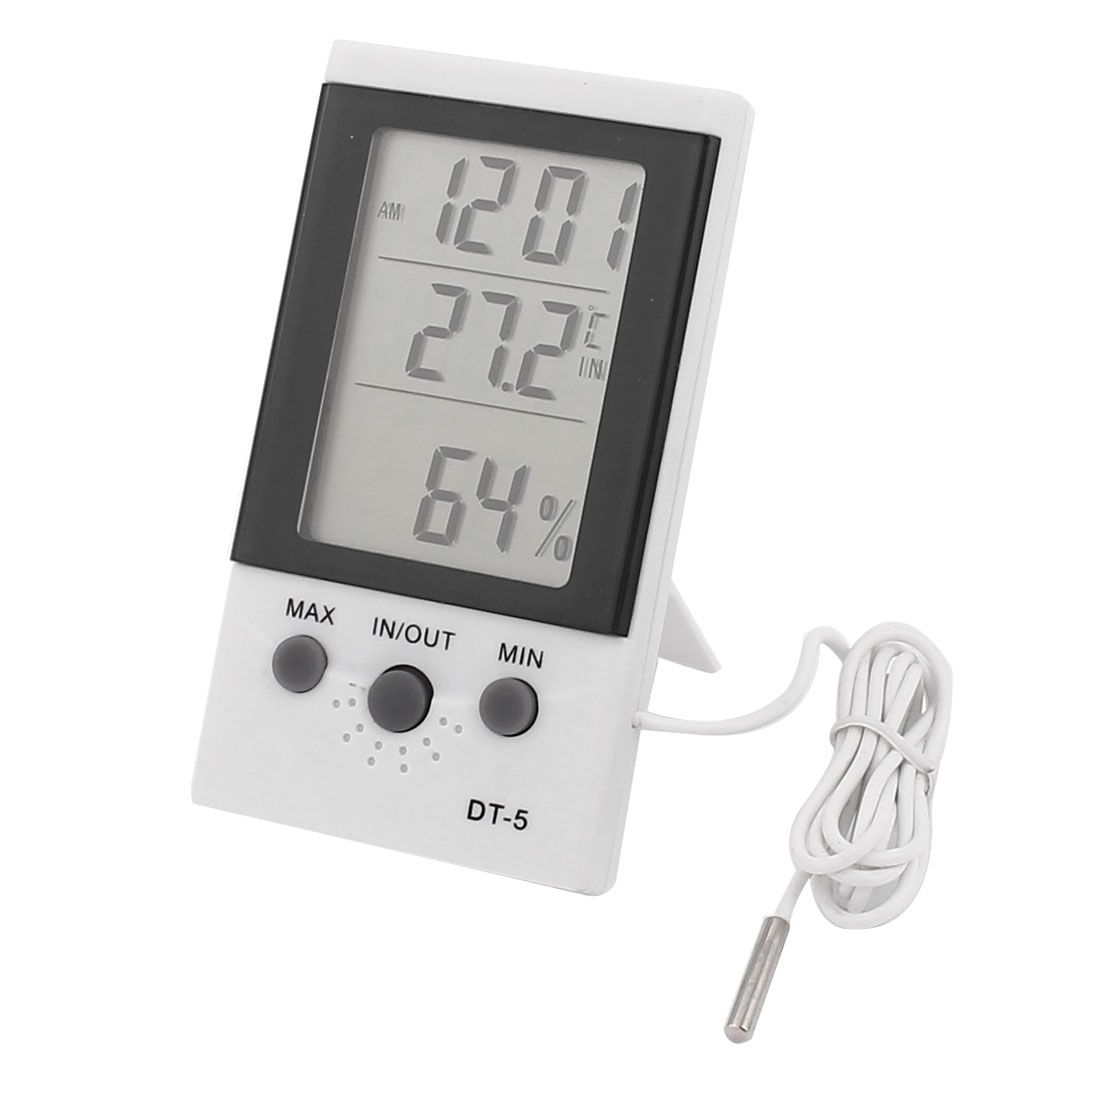 11 x 6 x 2cm White Plastic LCD Digital IN/OUT Thermometer w Indoor Hygrometer